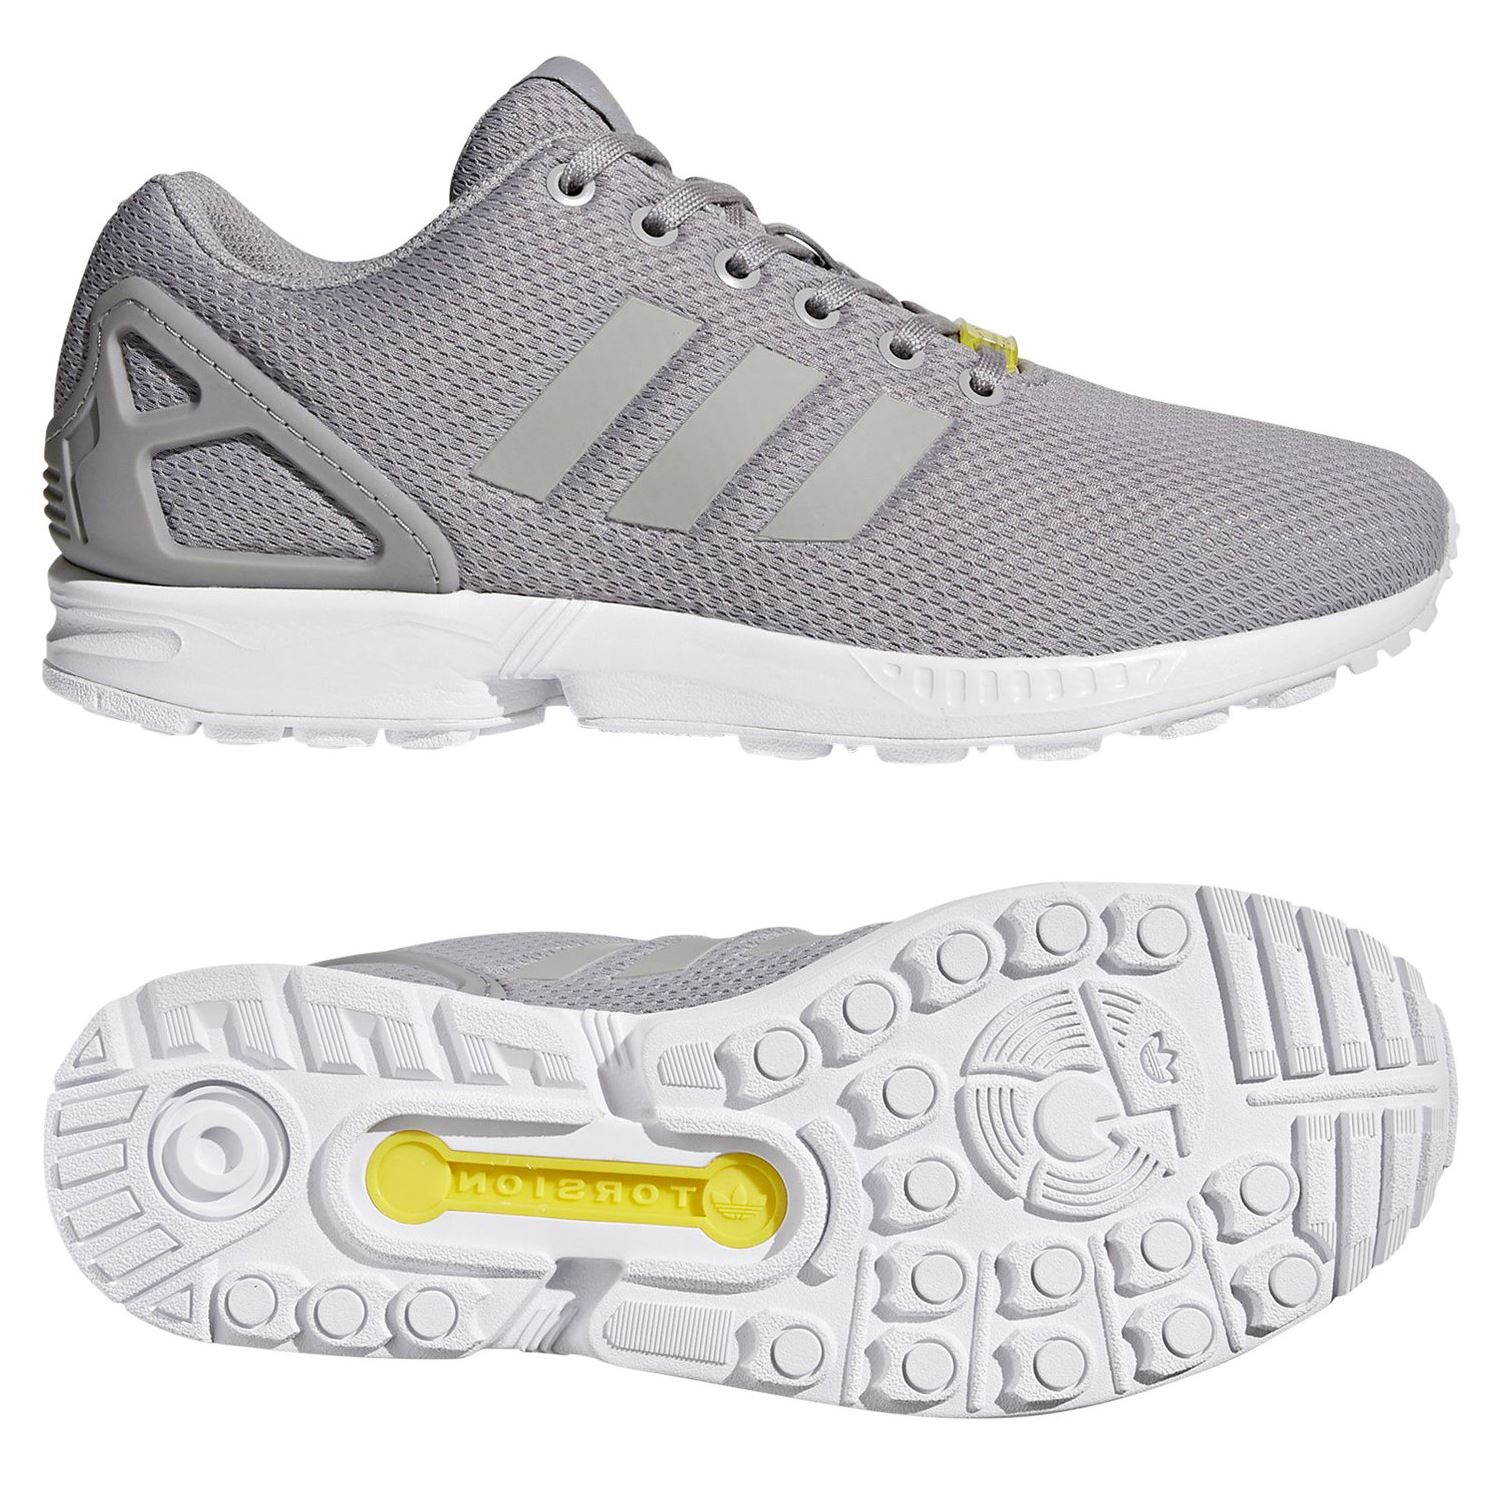 big sale fbd17 0a661 ZX FLUX formatori grigio SNEAKERS Scarpe retrò 3 STRIPES ADIDAS ORIGINALS  uomo